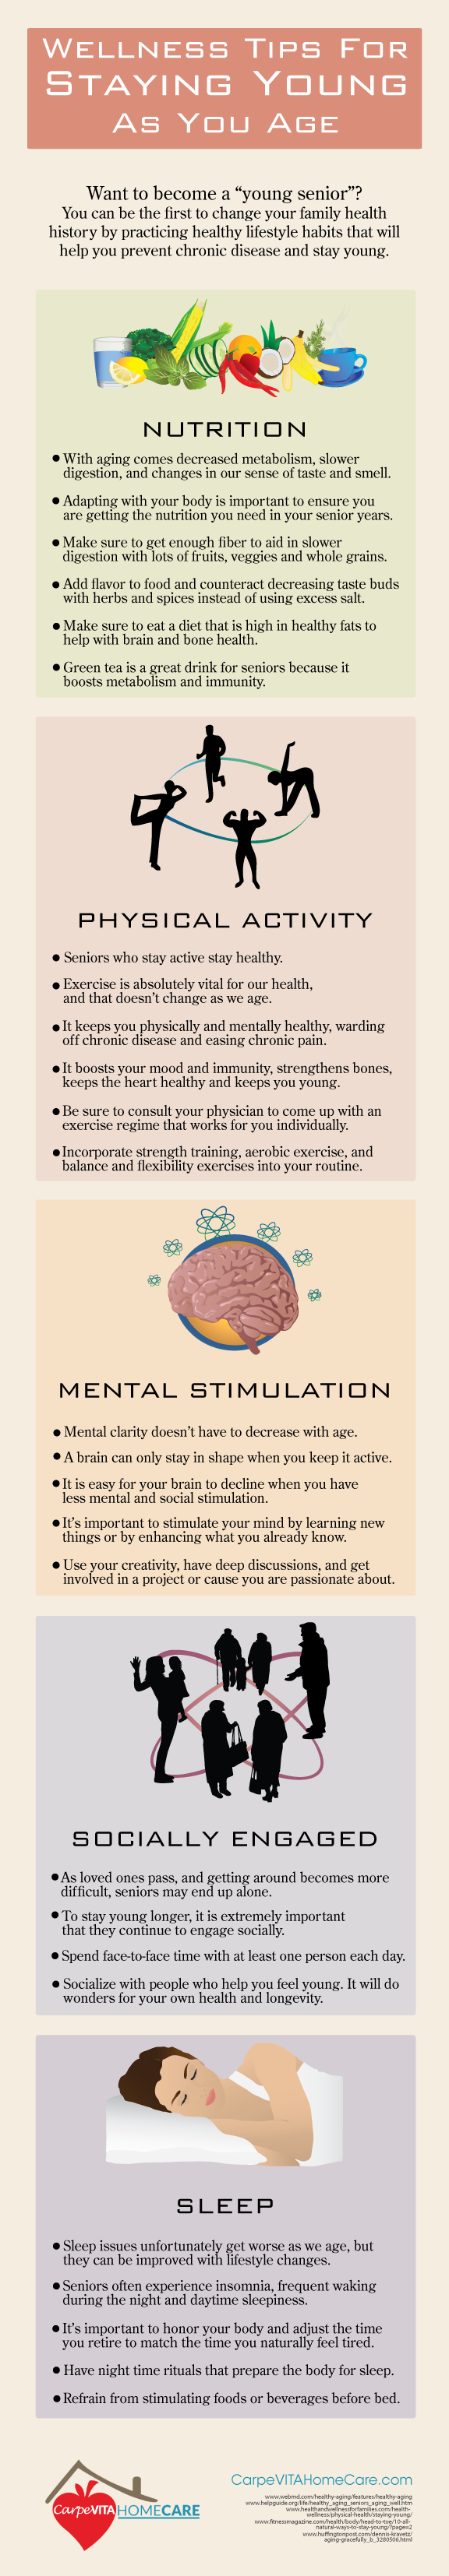 Wellness-Tips-for-Staying-Young-as-You-Age-Infographic